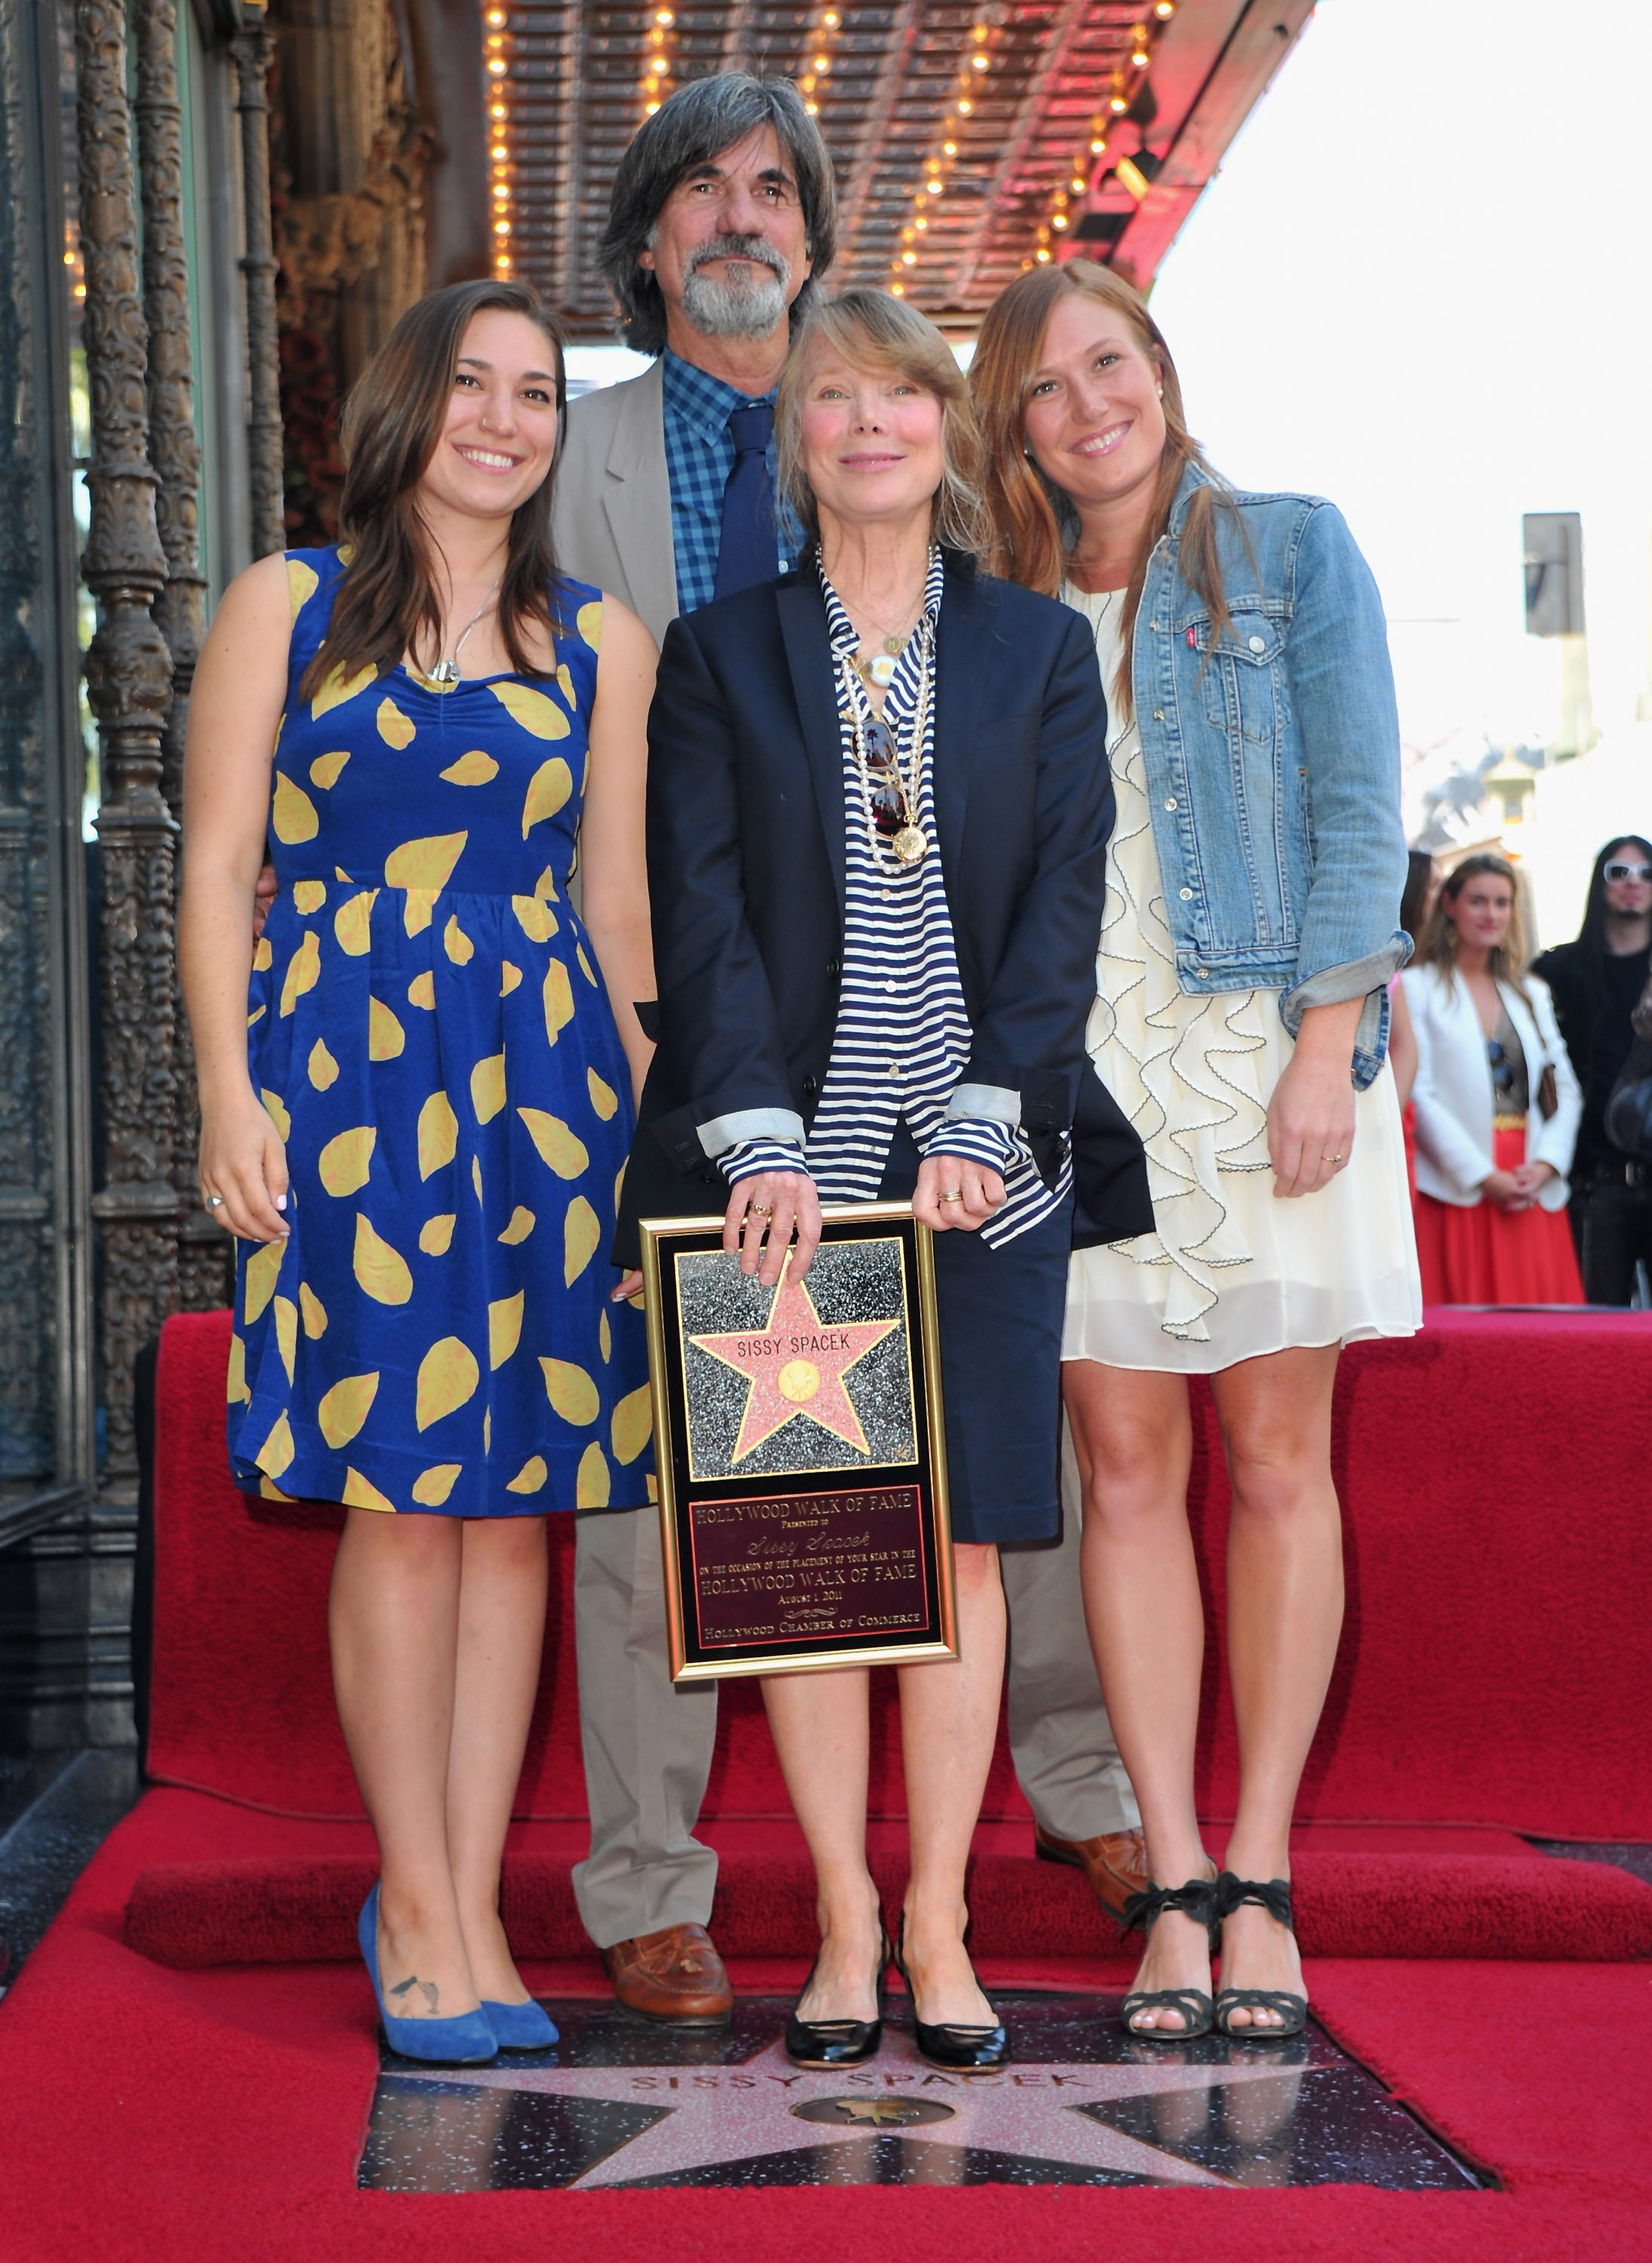 Madison Fisk, Jack Fisk, Sissy Spacek, Schuyler Fisk on August 1, 2011, in Hollywood, California. | photo: Getty Images